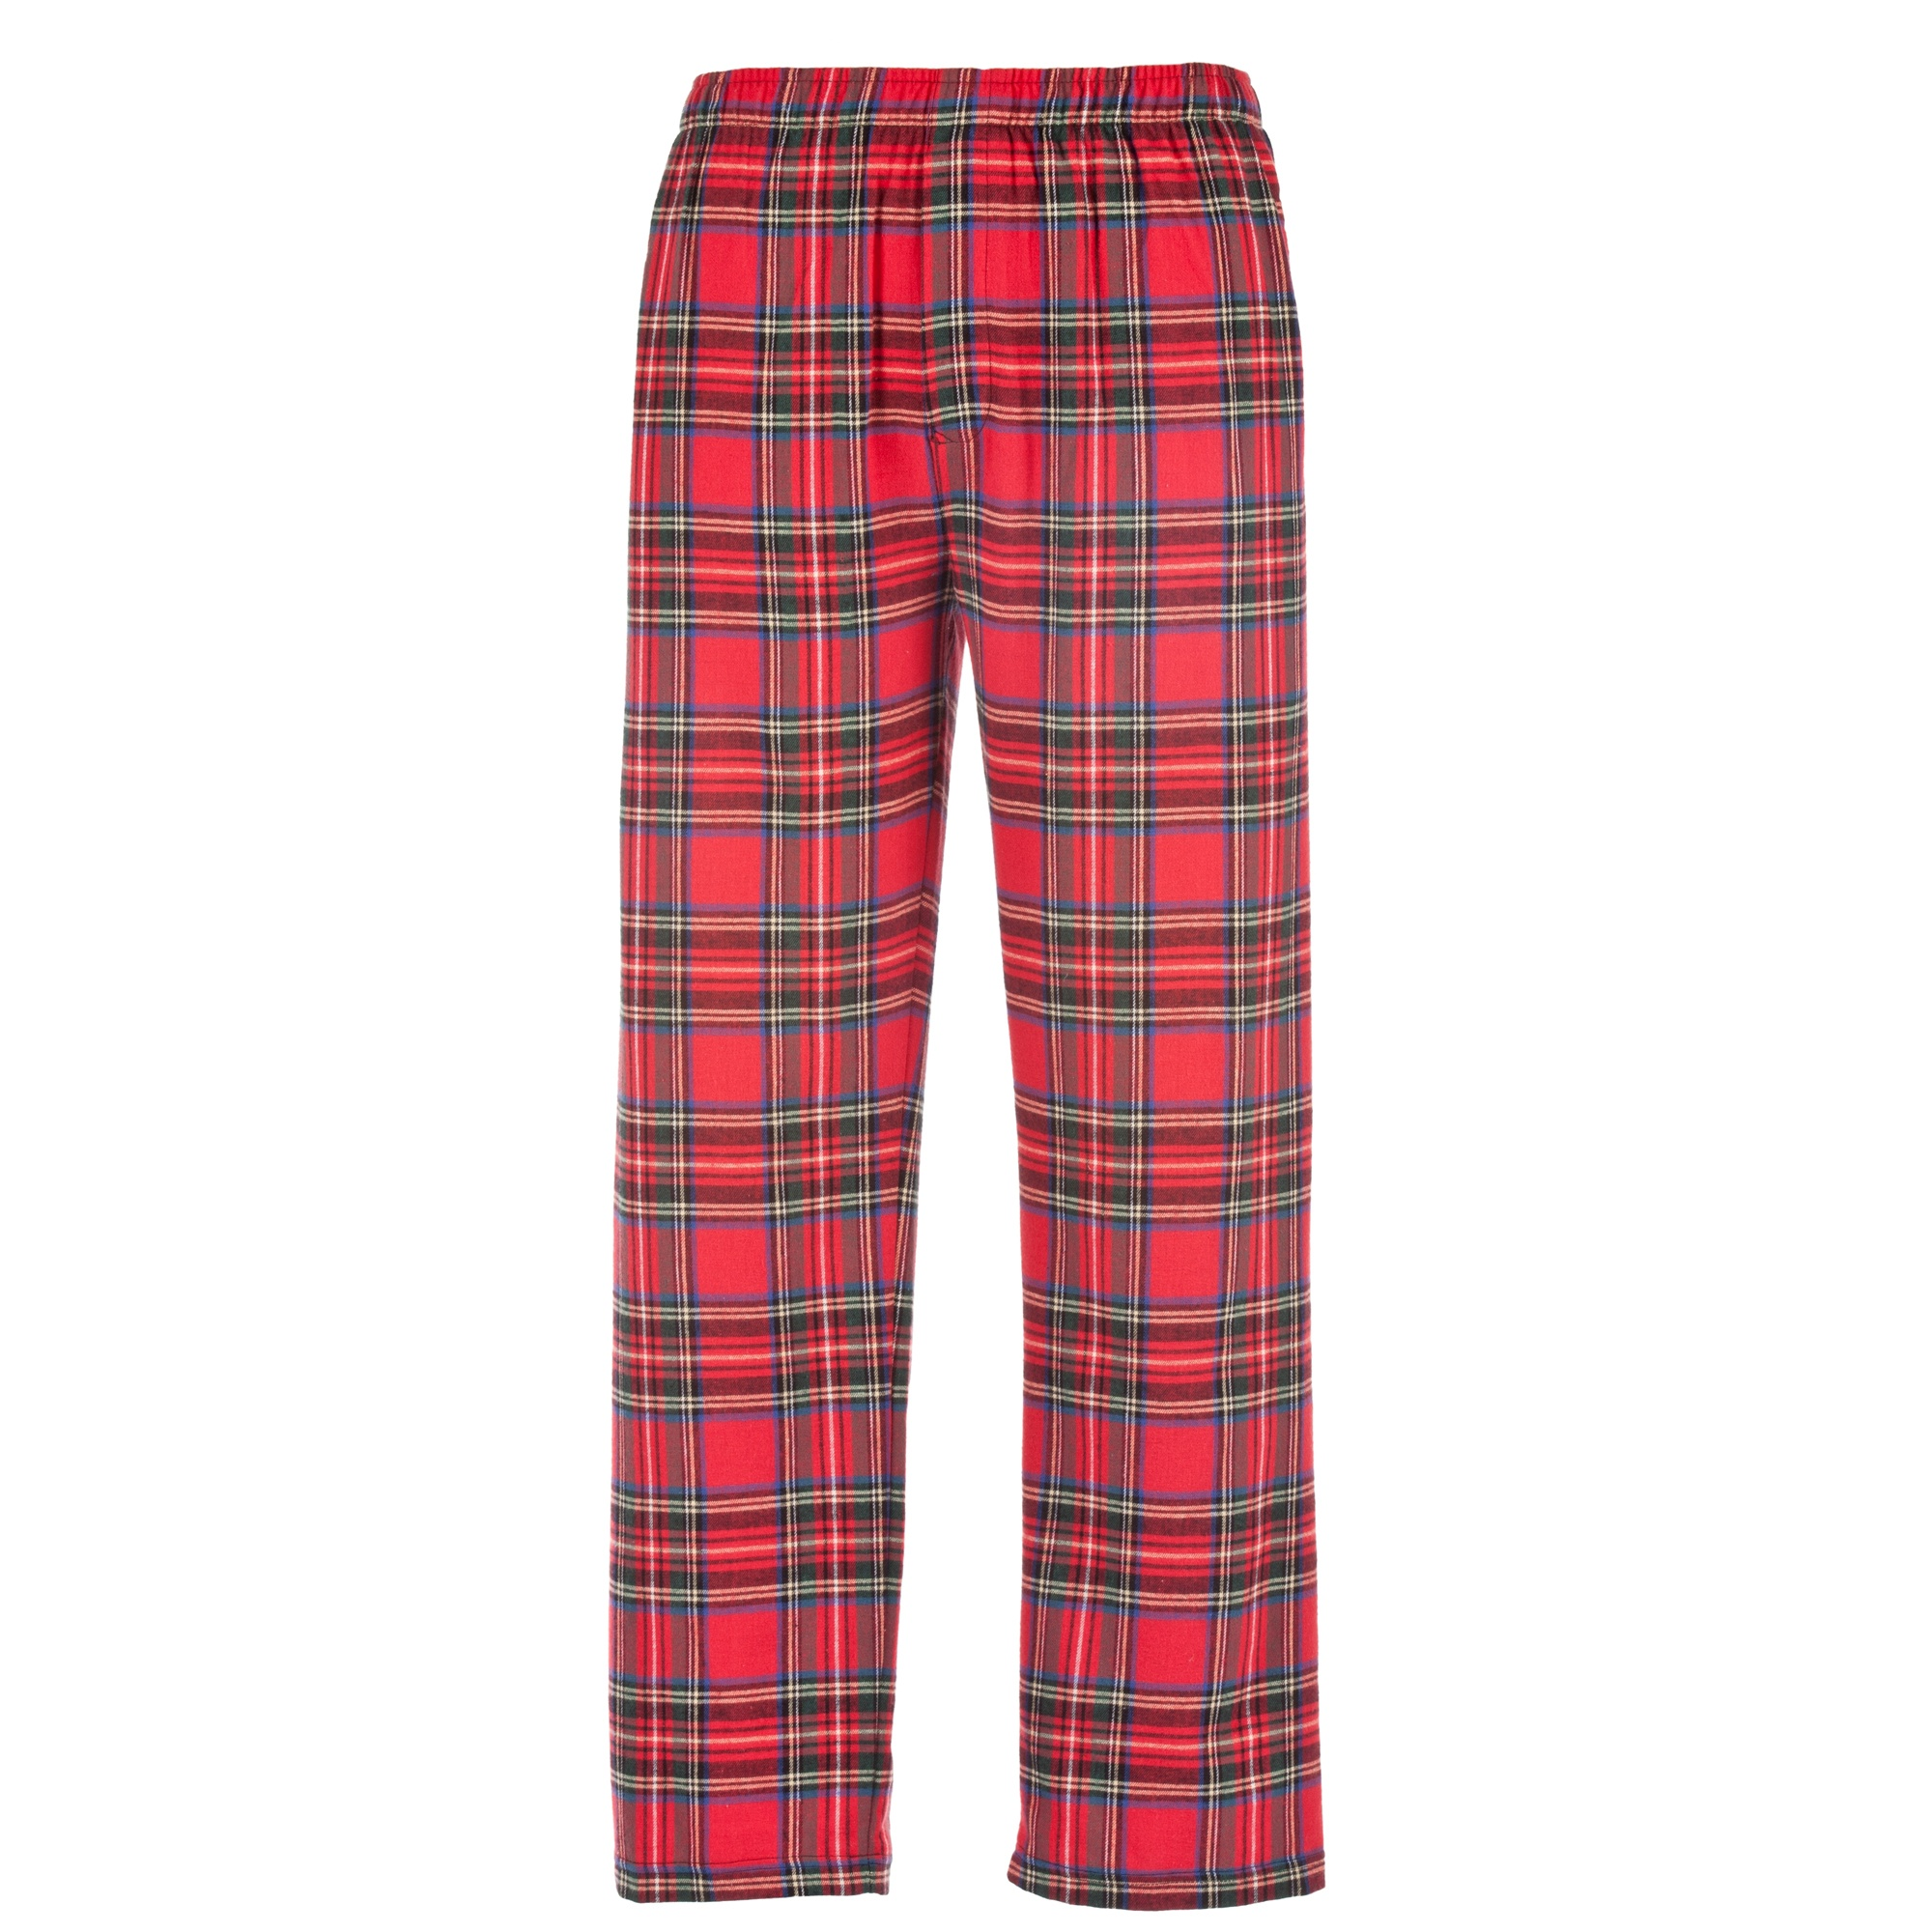 Mens Flannel Pajama Pants - Comfortable Cotton Bottoms Sleep Loungewear. from $ 8 90 Prime. out of 5 stars Wanted. Men's Flannel Rib-Cuff 2 Pocket Pajama Pant. from $ 14 99 Prime. out of 5 stars Just Love. Plush Pajama Pants for Girls $ 11 99 Prime. out of 5 stars PajamaMania.